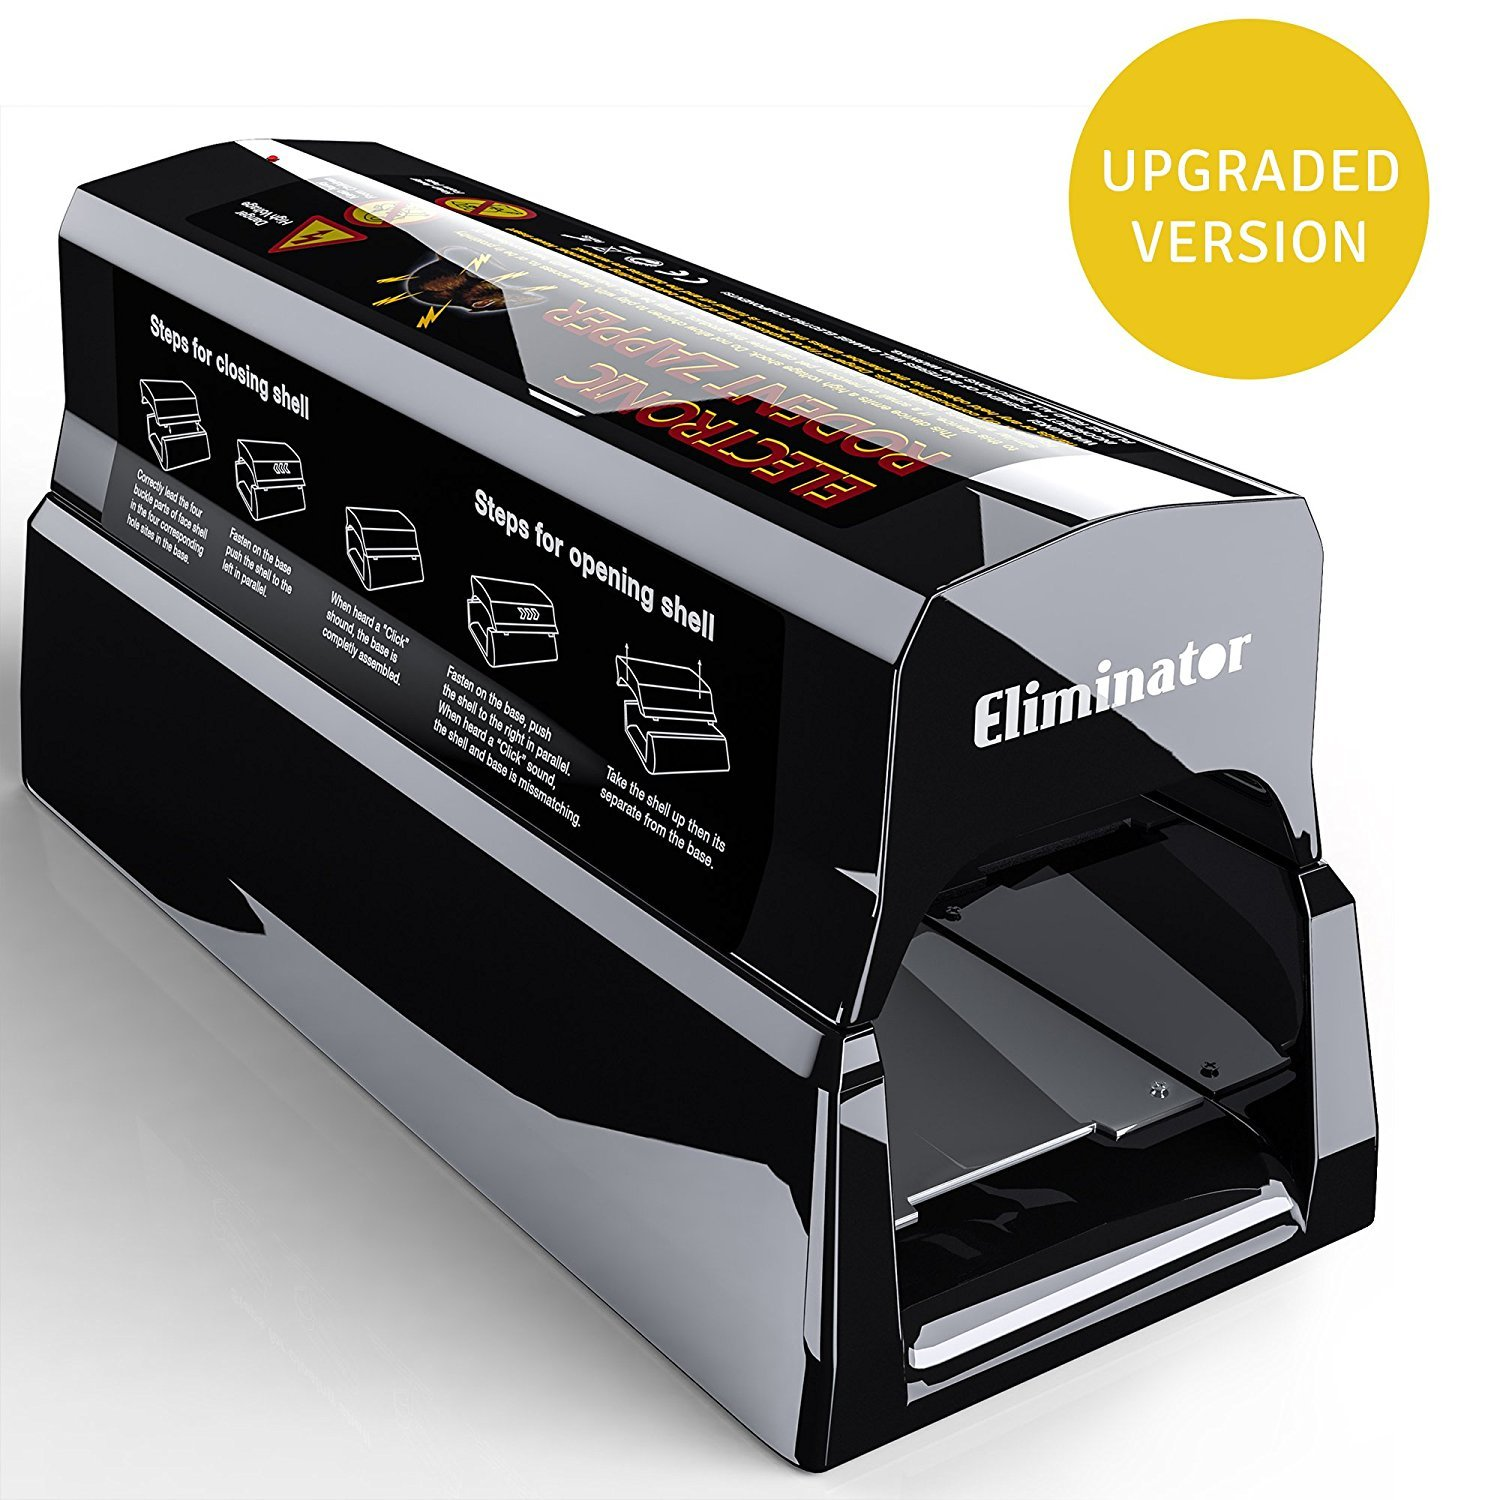 Eliminator Powerful Electronic Mouse Rodent Trap Killer -Eliminate Mice, Rats, Chipmunks and Squirrels Humanely, Efficiently and Safely Without Poison - Infestation Solution [Upgraded]